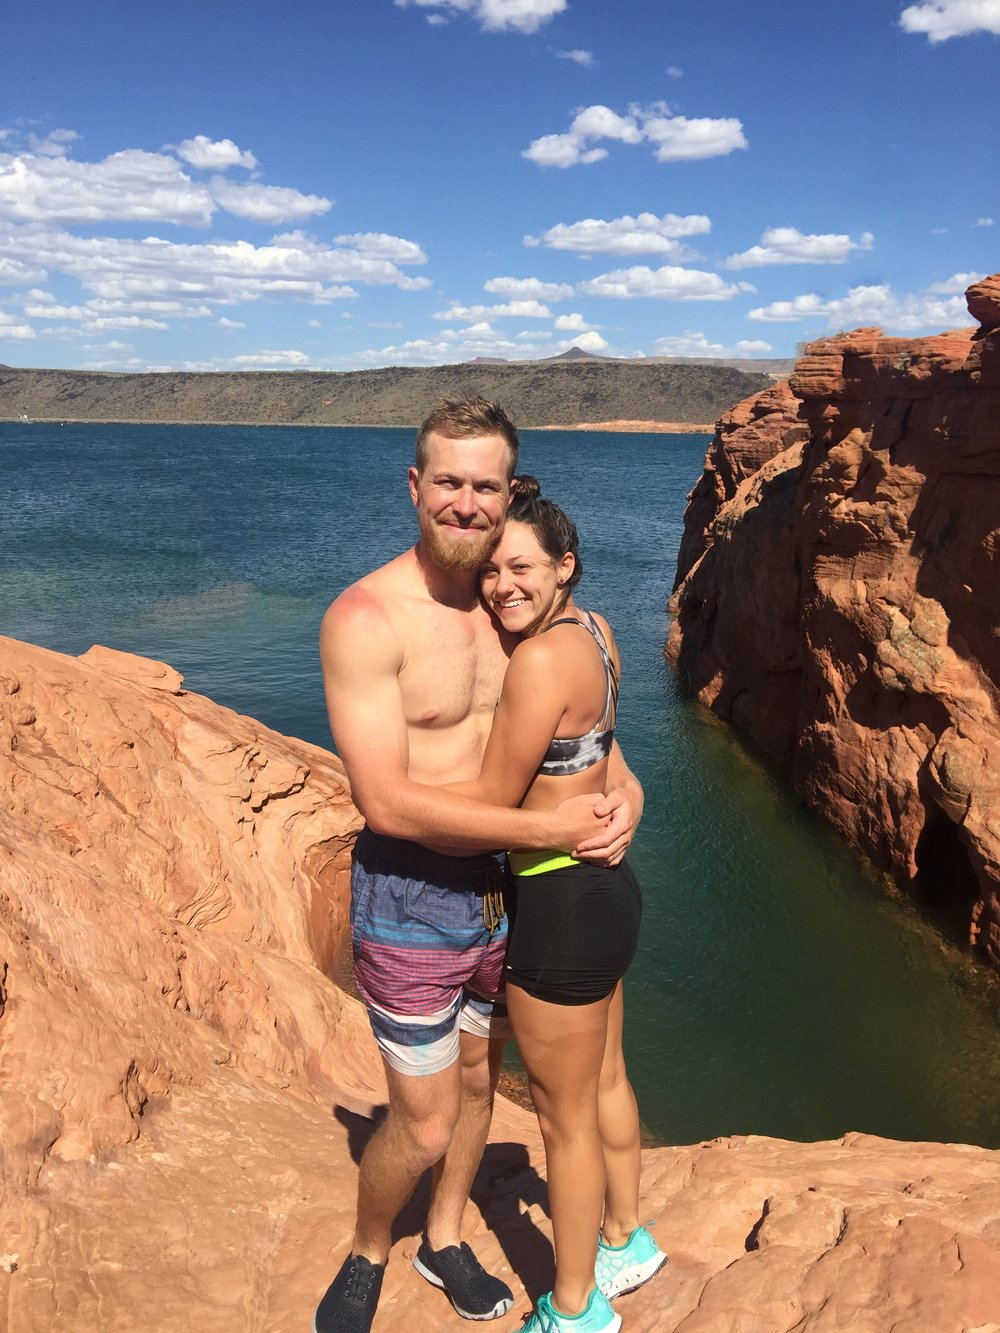 Blake and I enjoying the view in Sand Hollow.